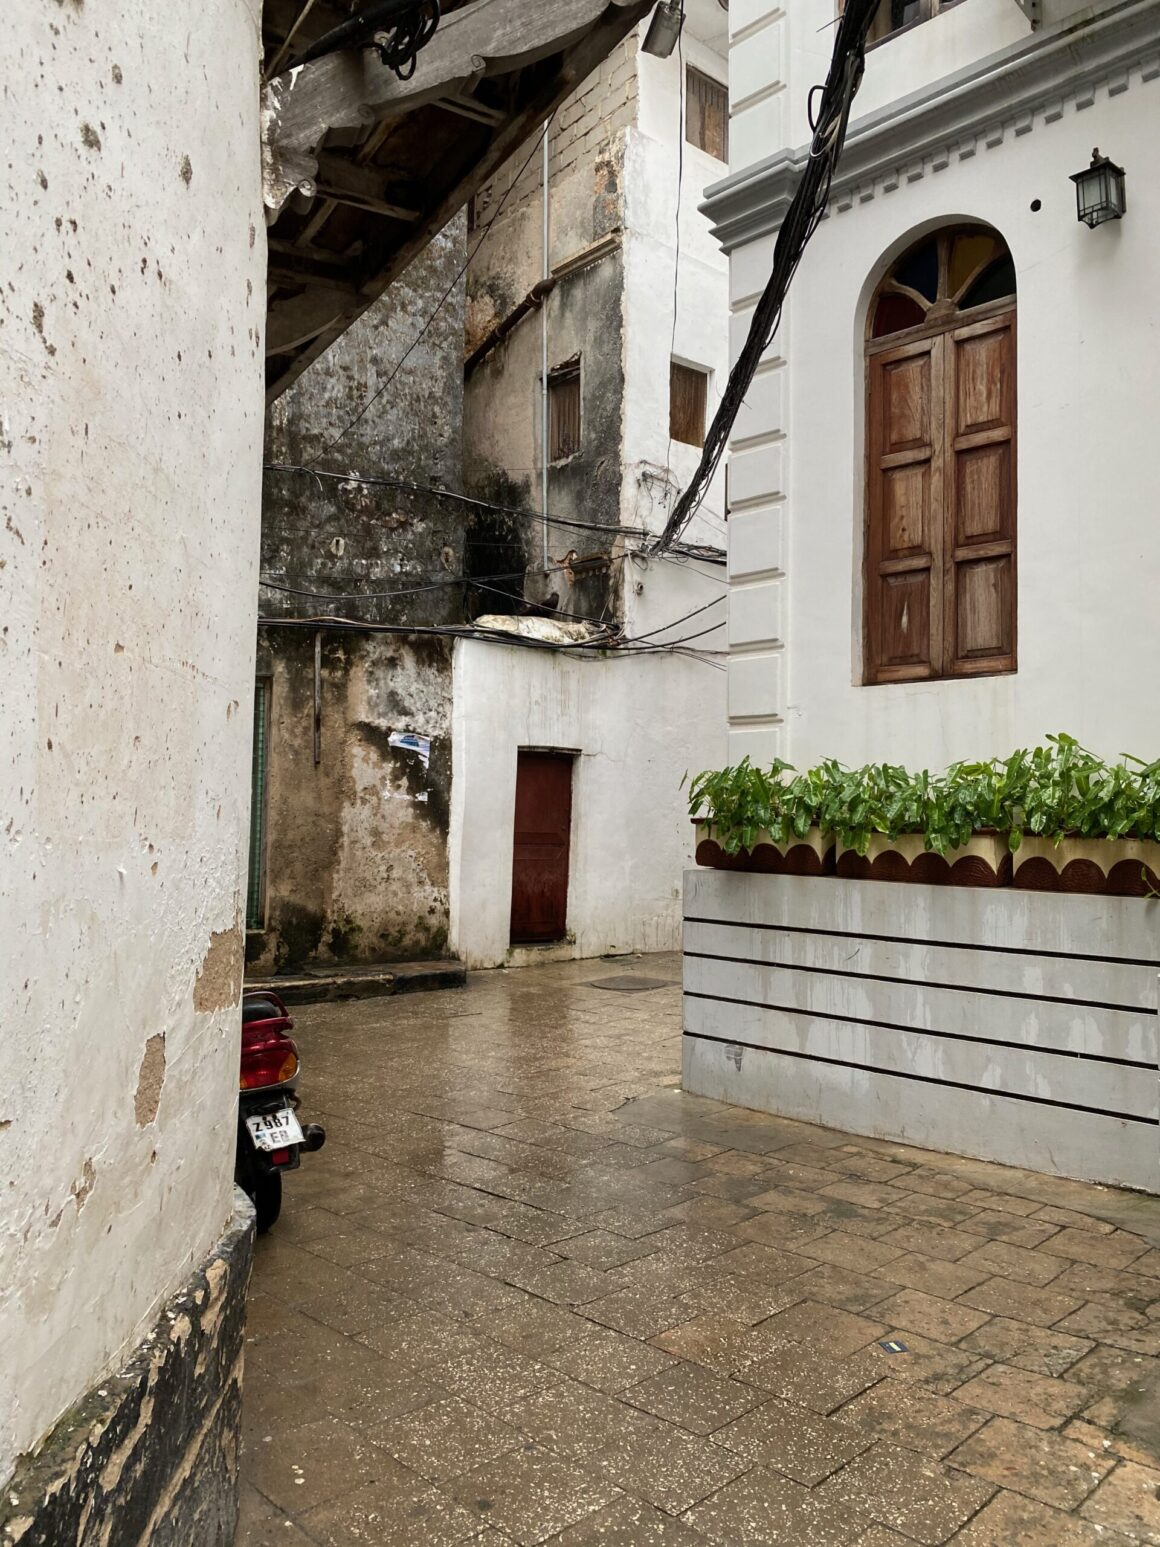 Labyrinth of narrow streets in Stone Town